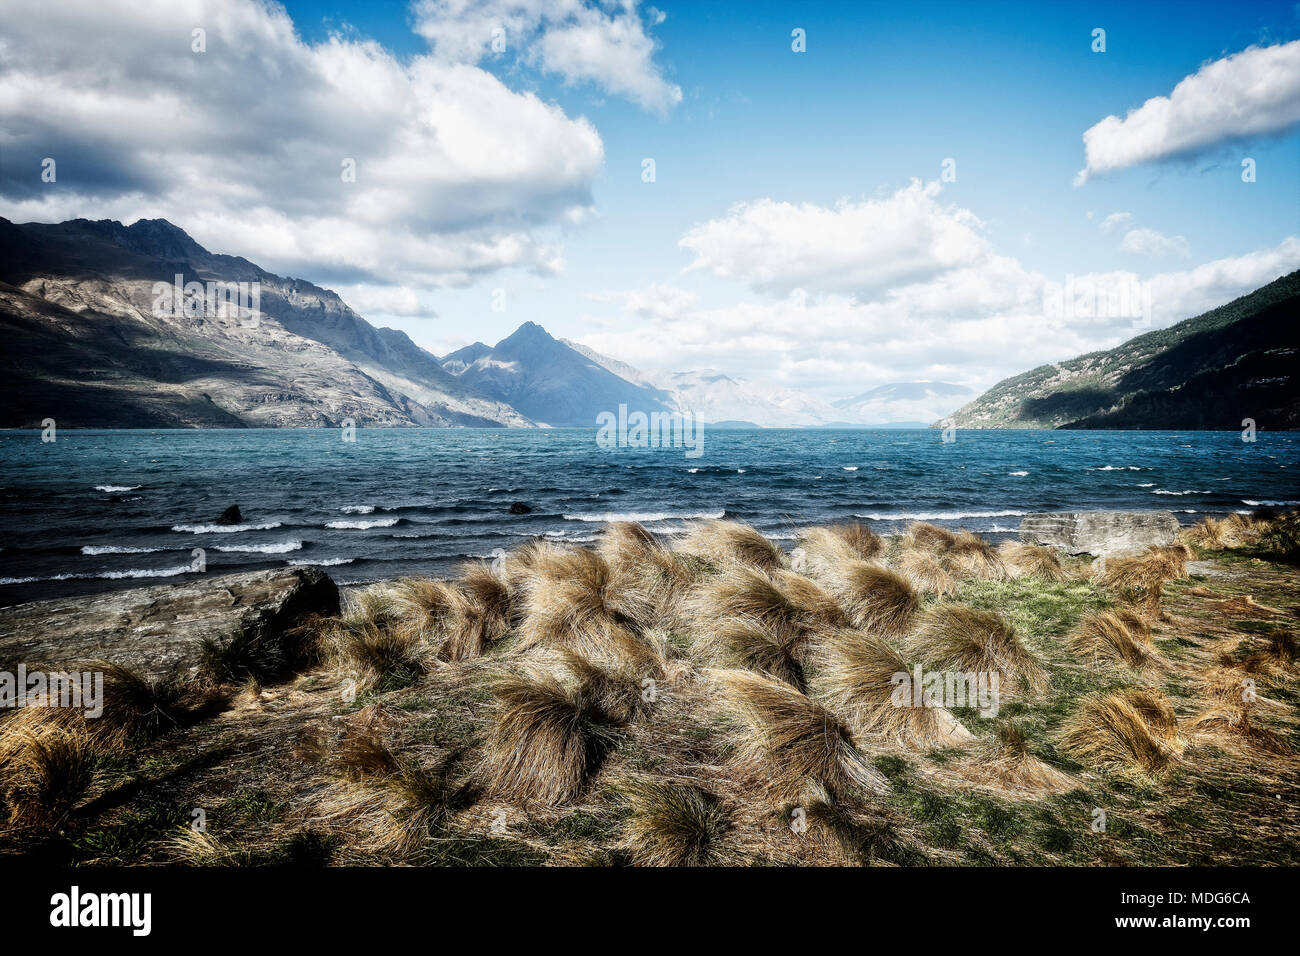 Wind sweeps across Lake Wakatipu near Queenstown creating whitecaps, South Island, New Zealand. - Stock Image